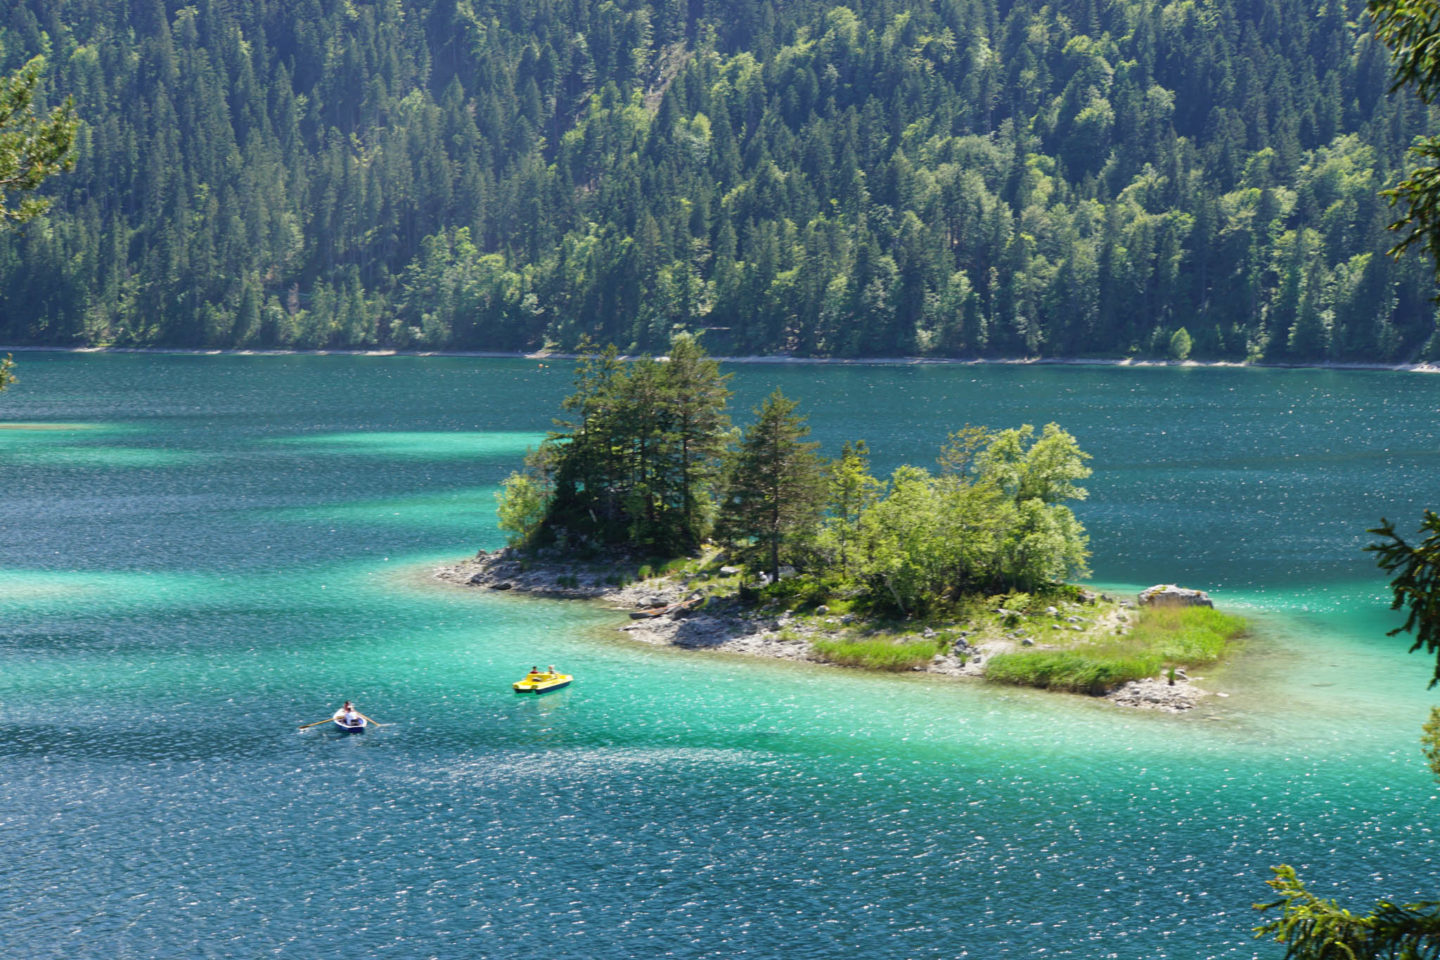 Views of the water of the Eibsee